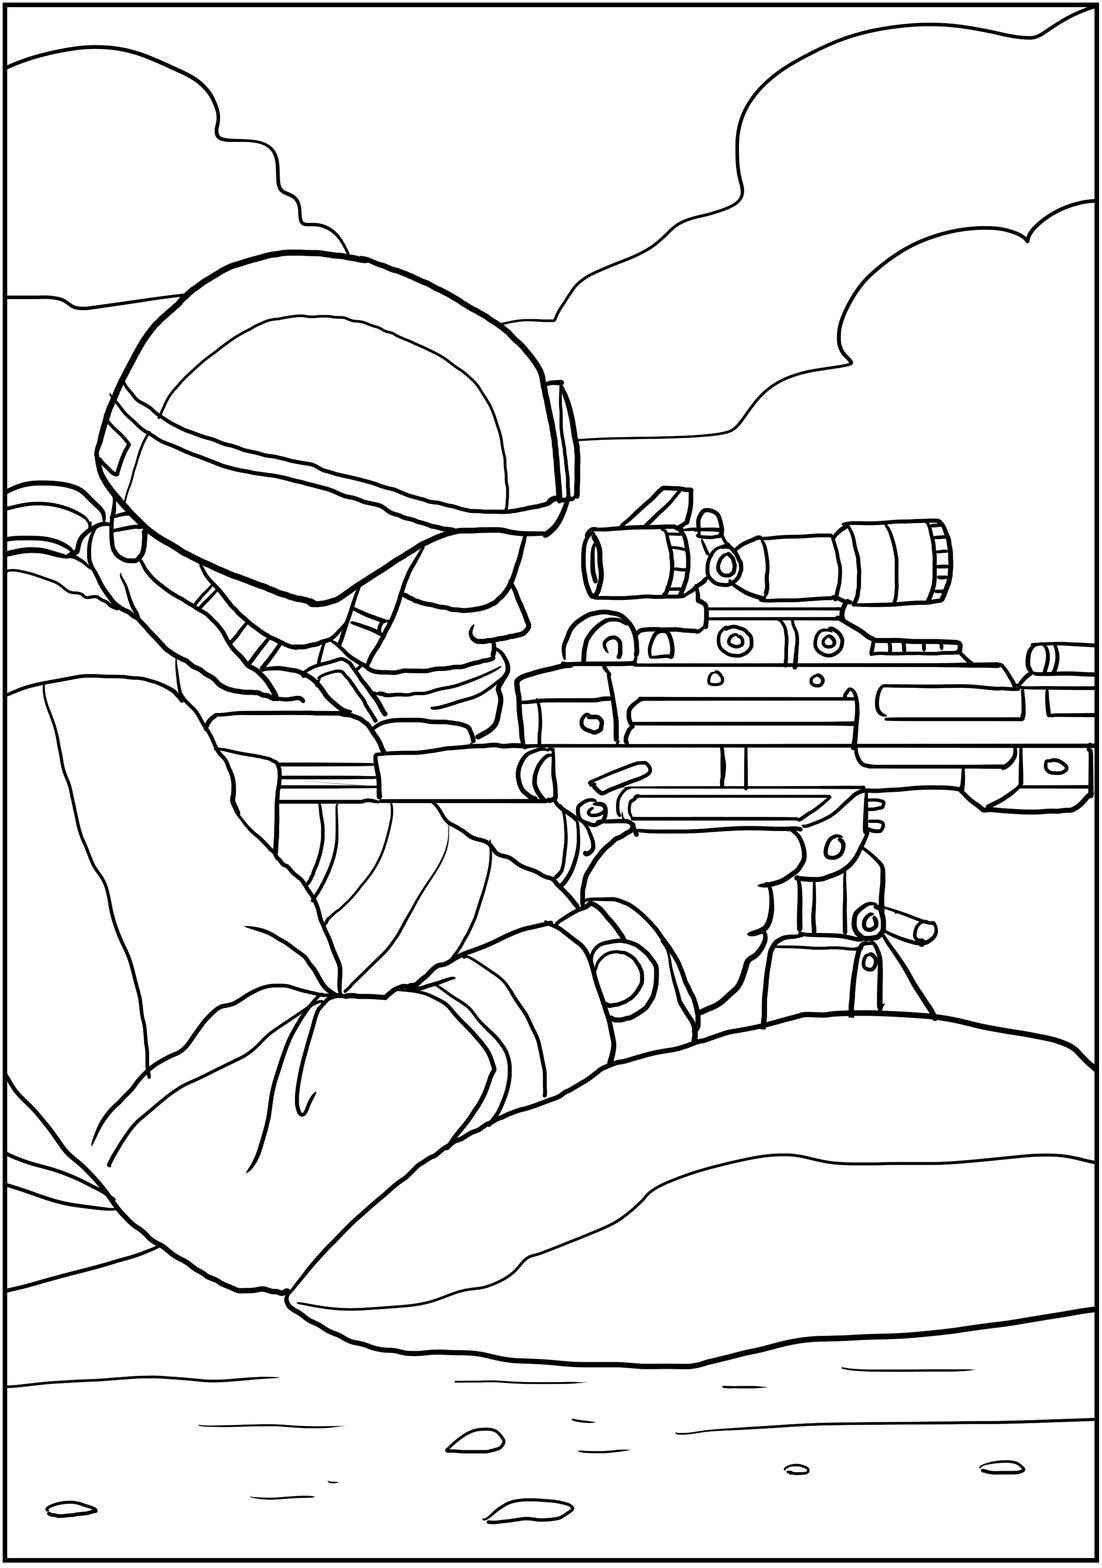 Military Scenes To Color From New Coloring Books Around Army Theme